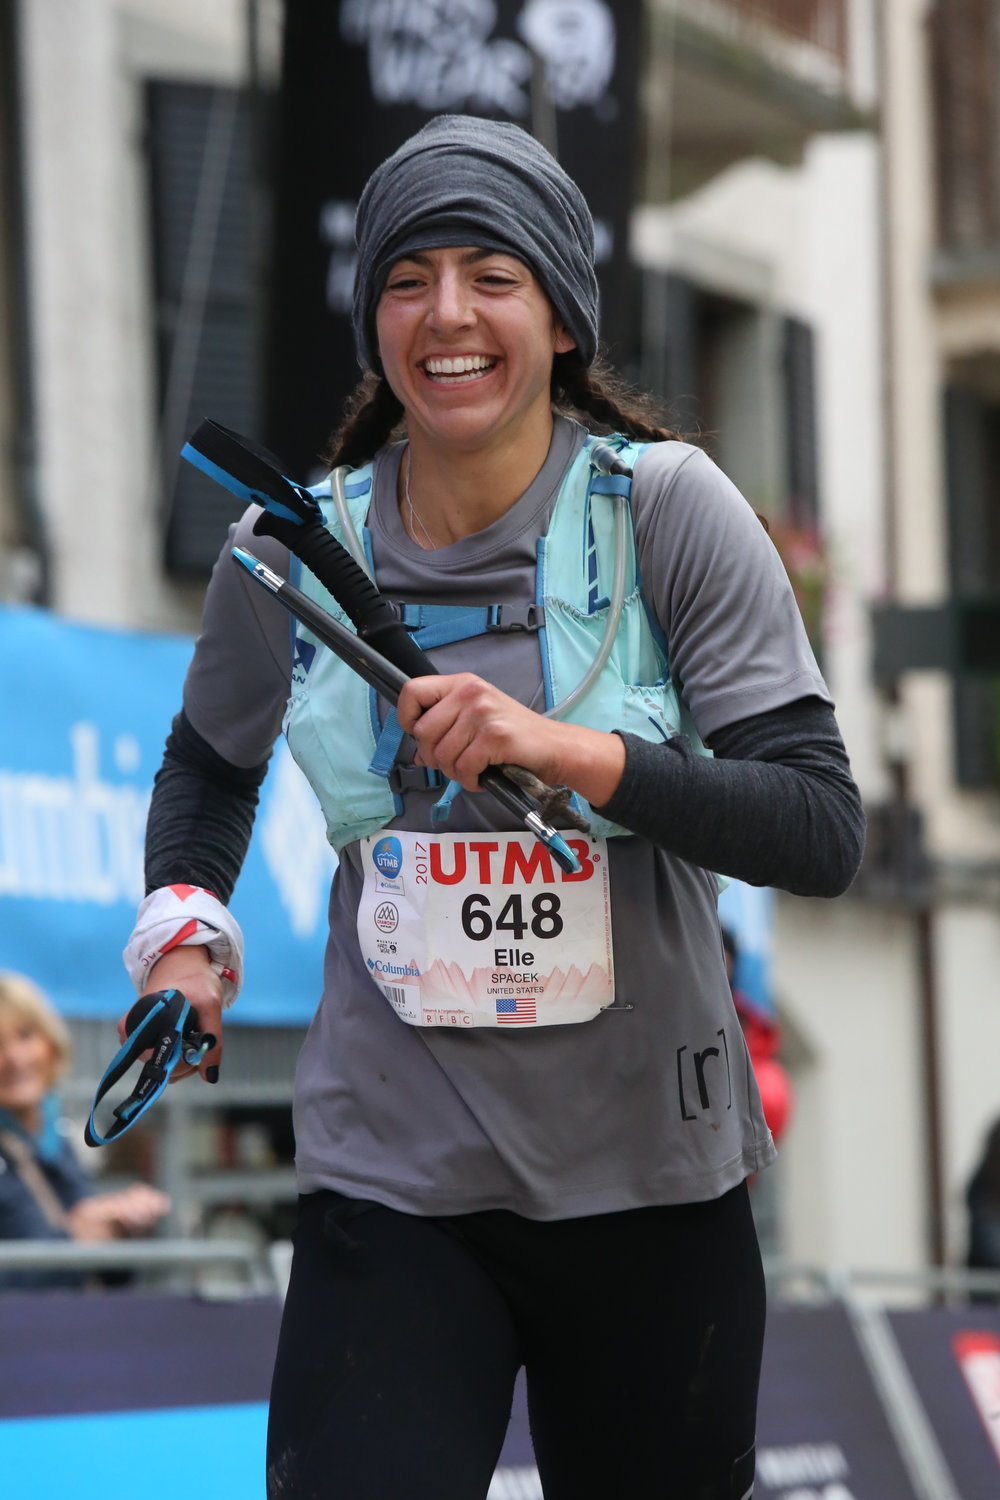 Elle finishing strong at the 2017 UTMB wearing the base compression top, ruhn t-shirt + women's 3/4 legging